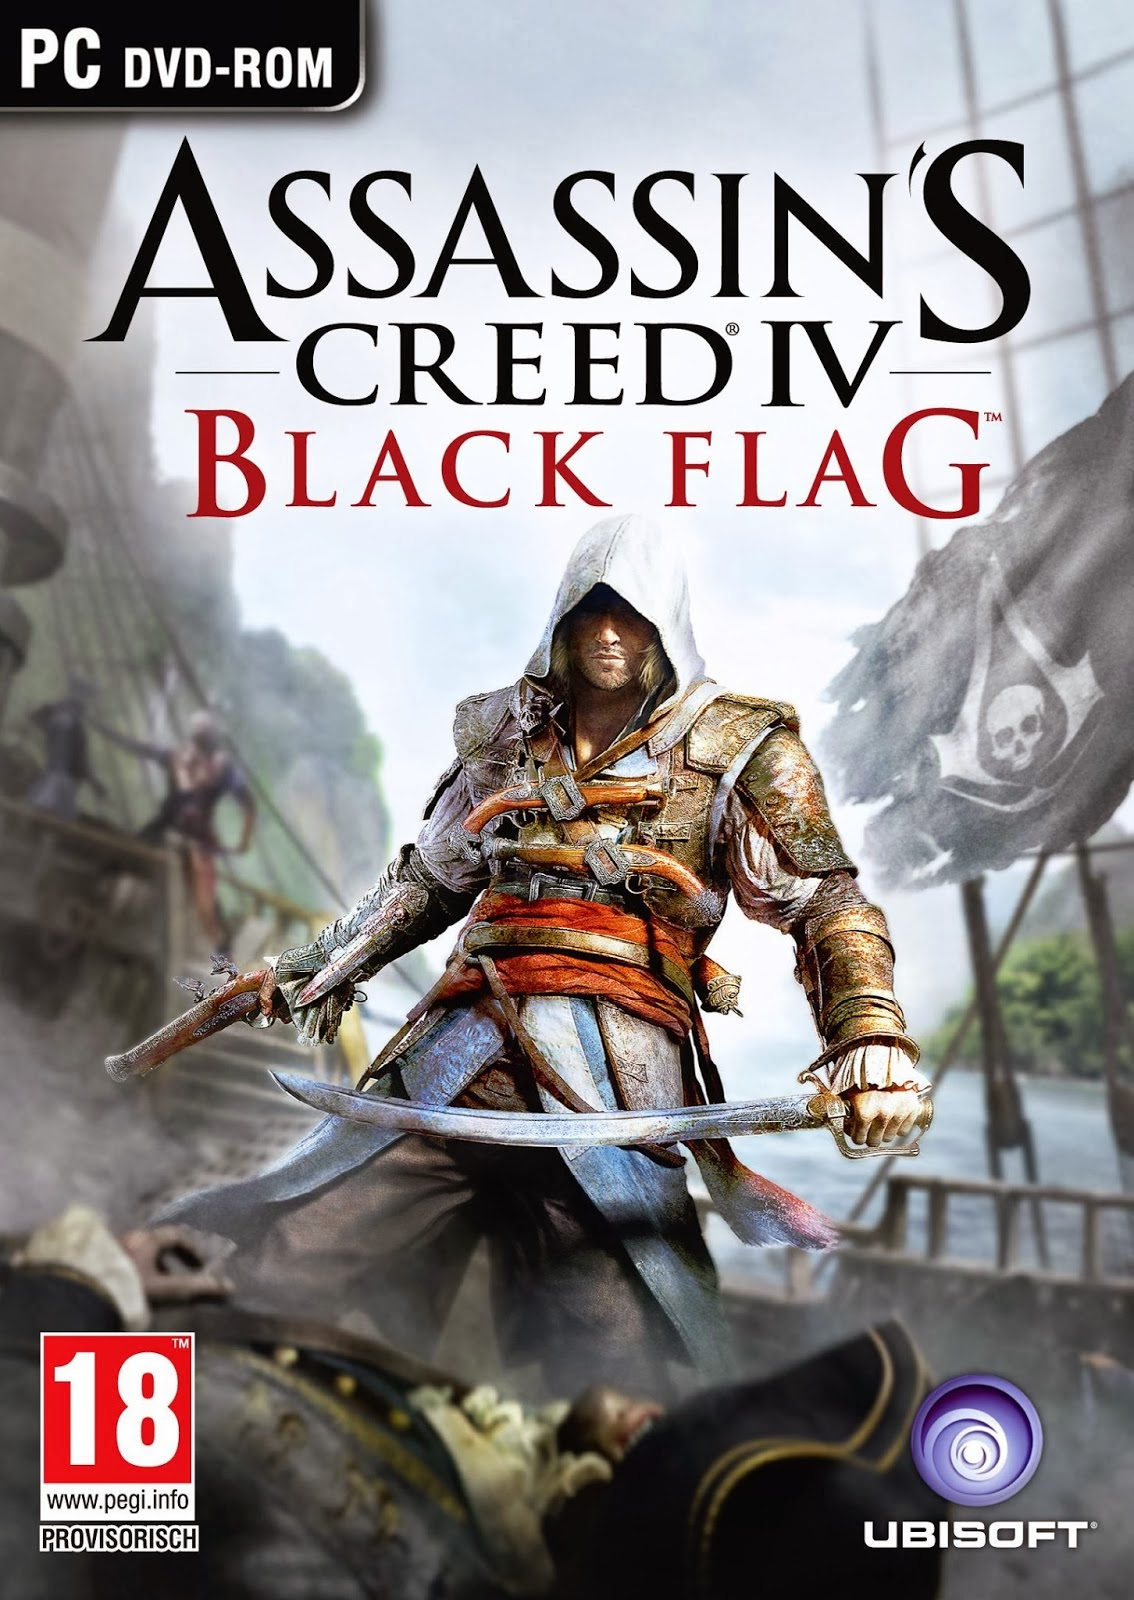 Download - Jogo Assassins Creed IV Black Flag RELOADED - PC (2013)